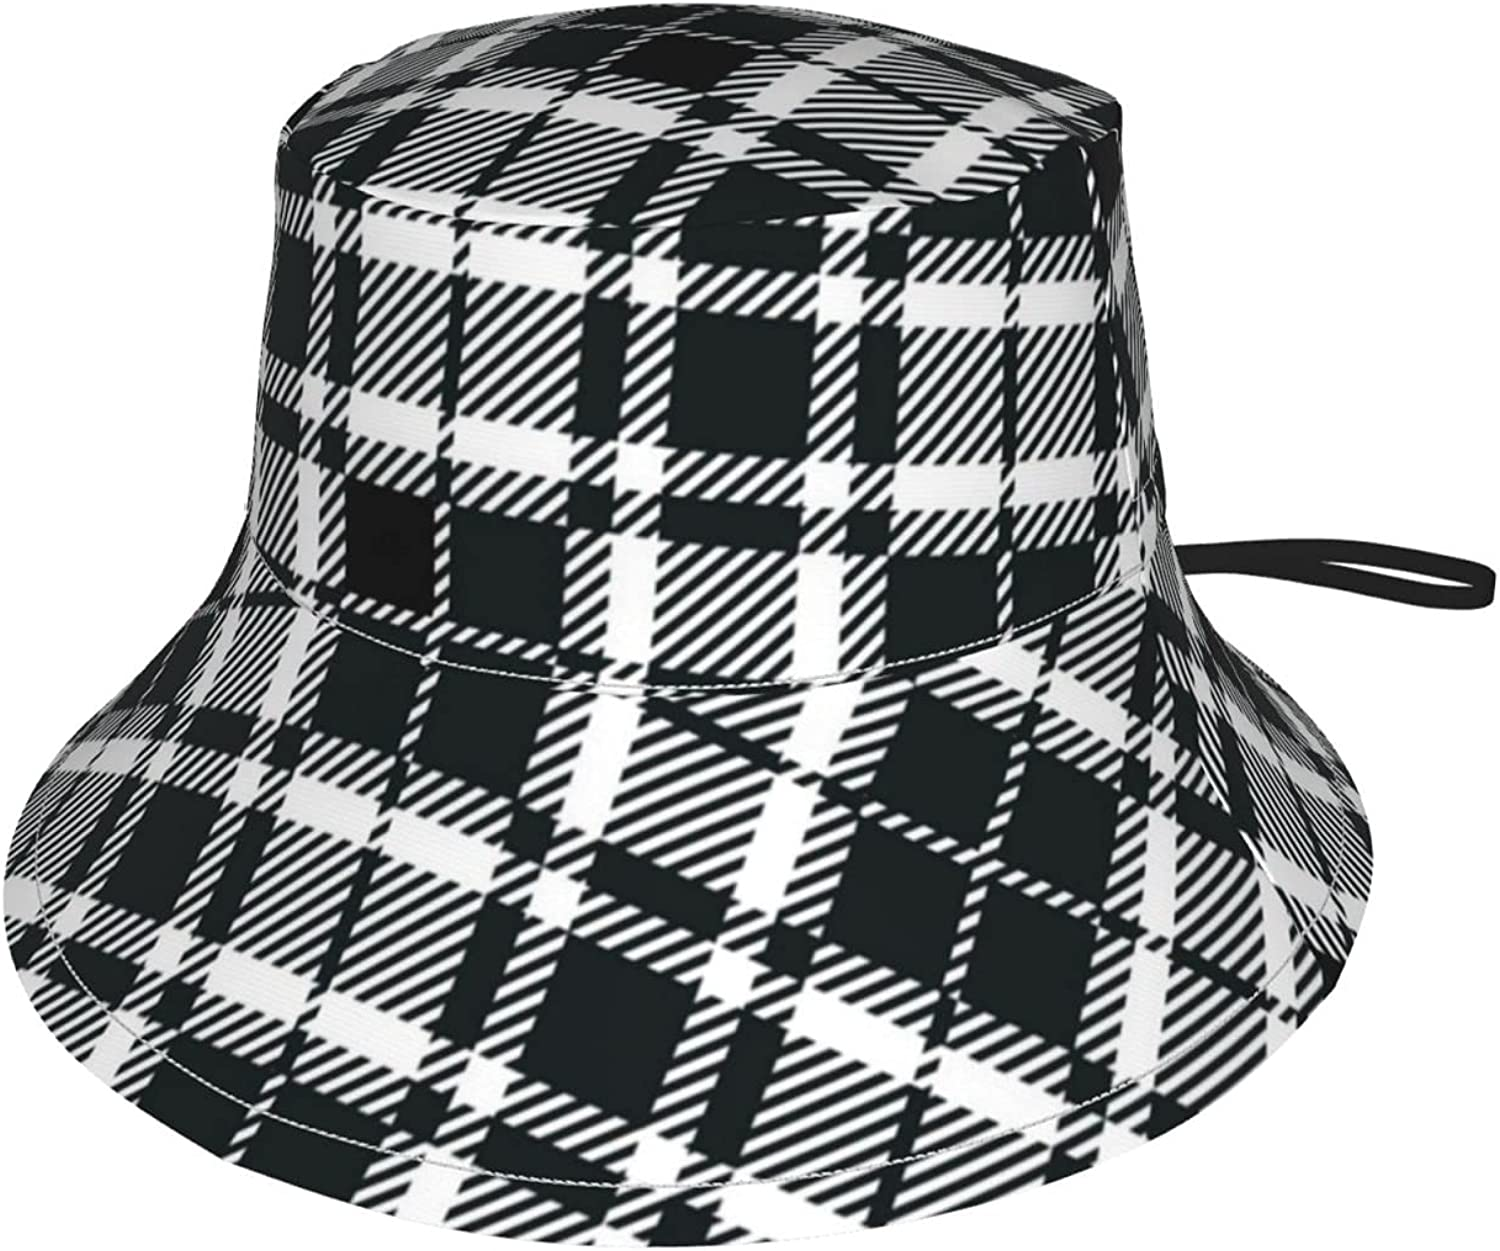 Kids Bucket Hat Black and White Tartan Wide Brim Sun Protection Fishing Hat for Boys and Girls Outdoor Activities